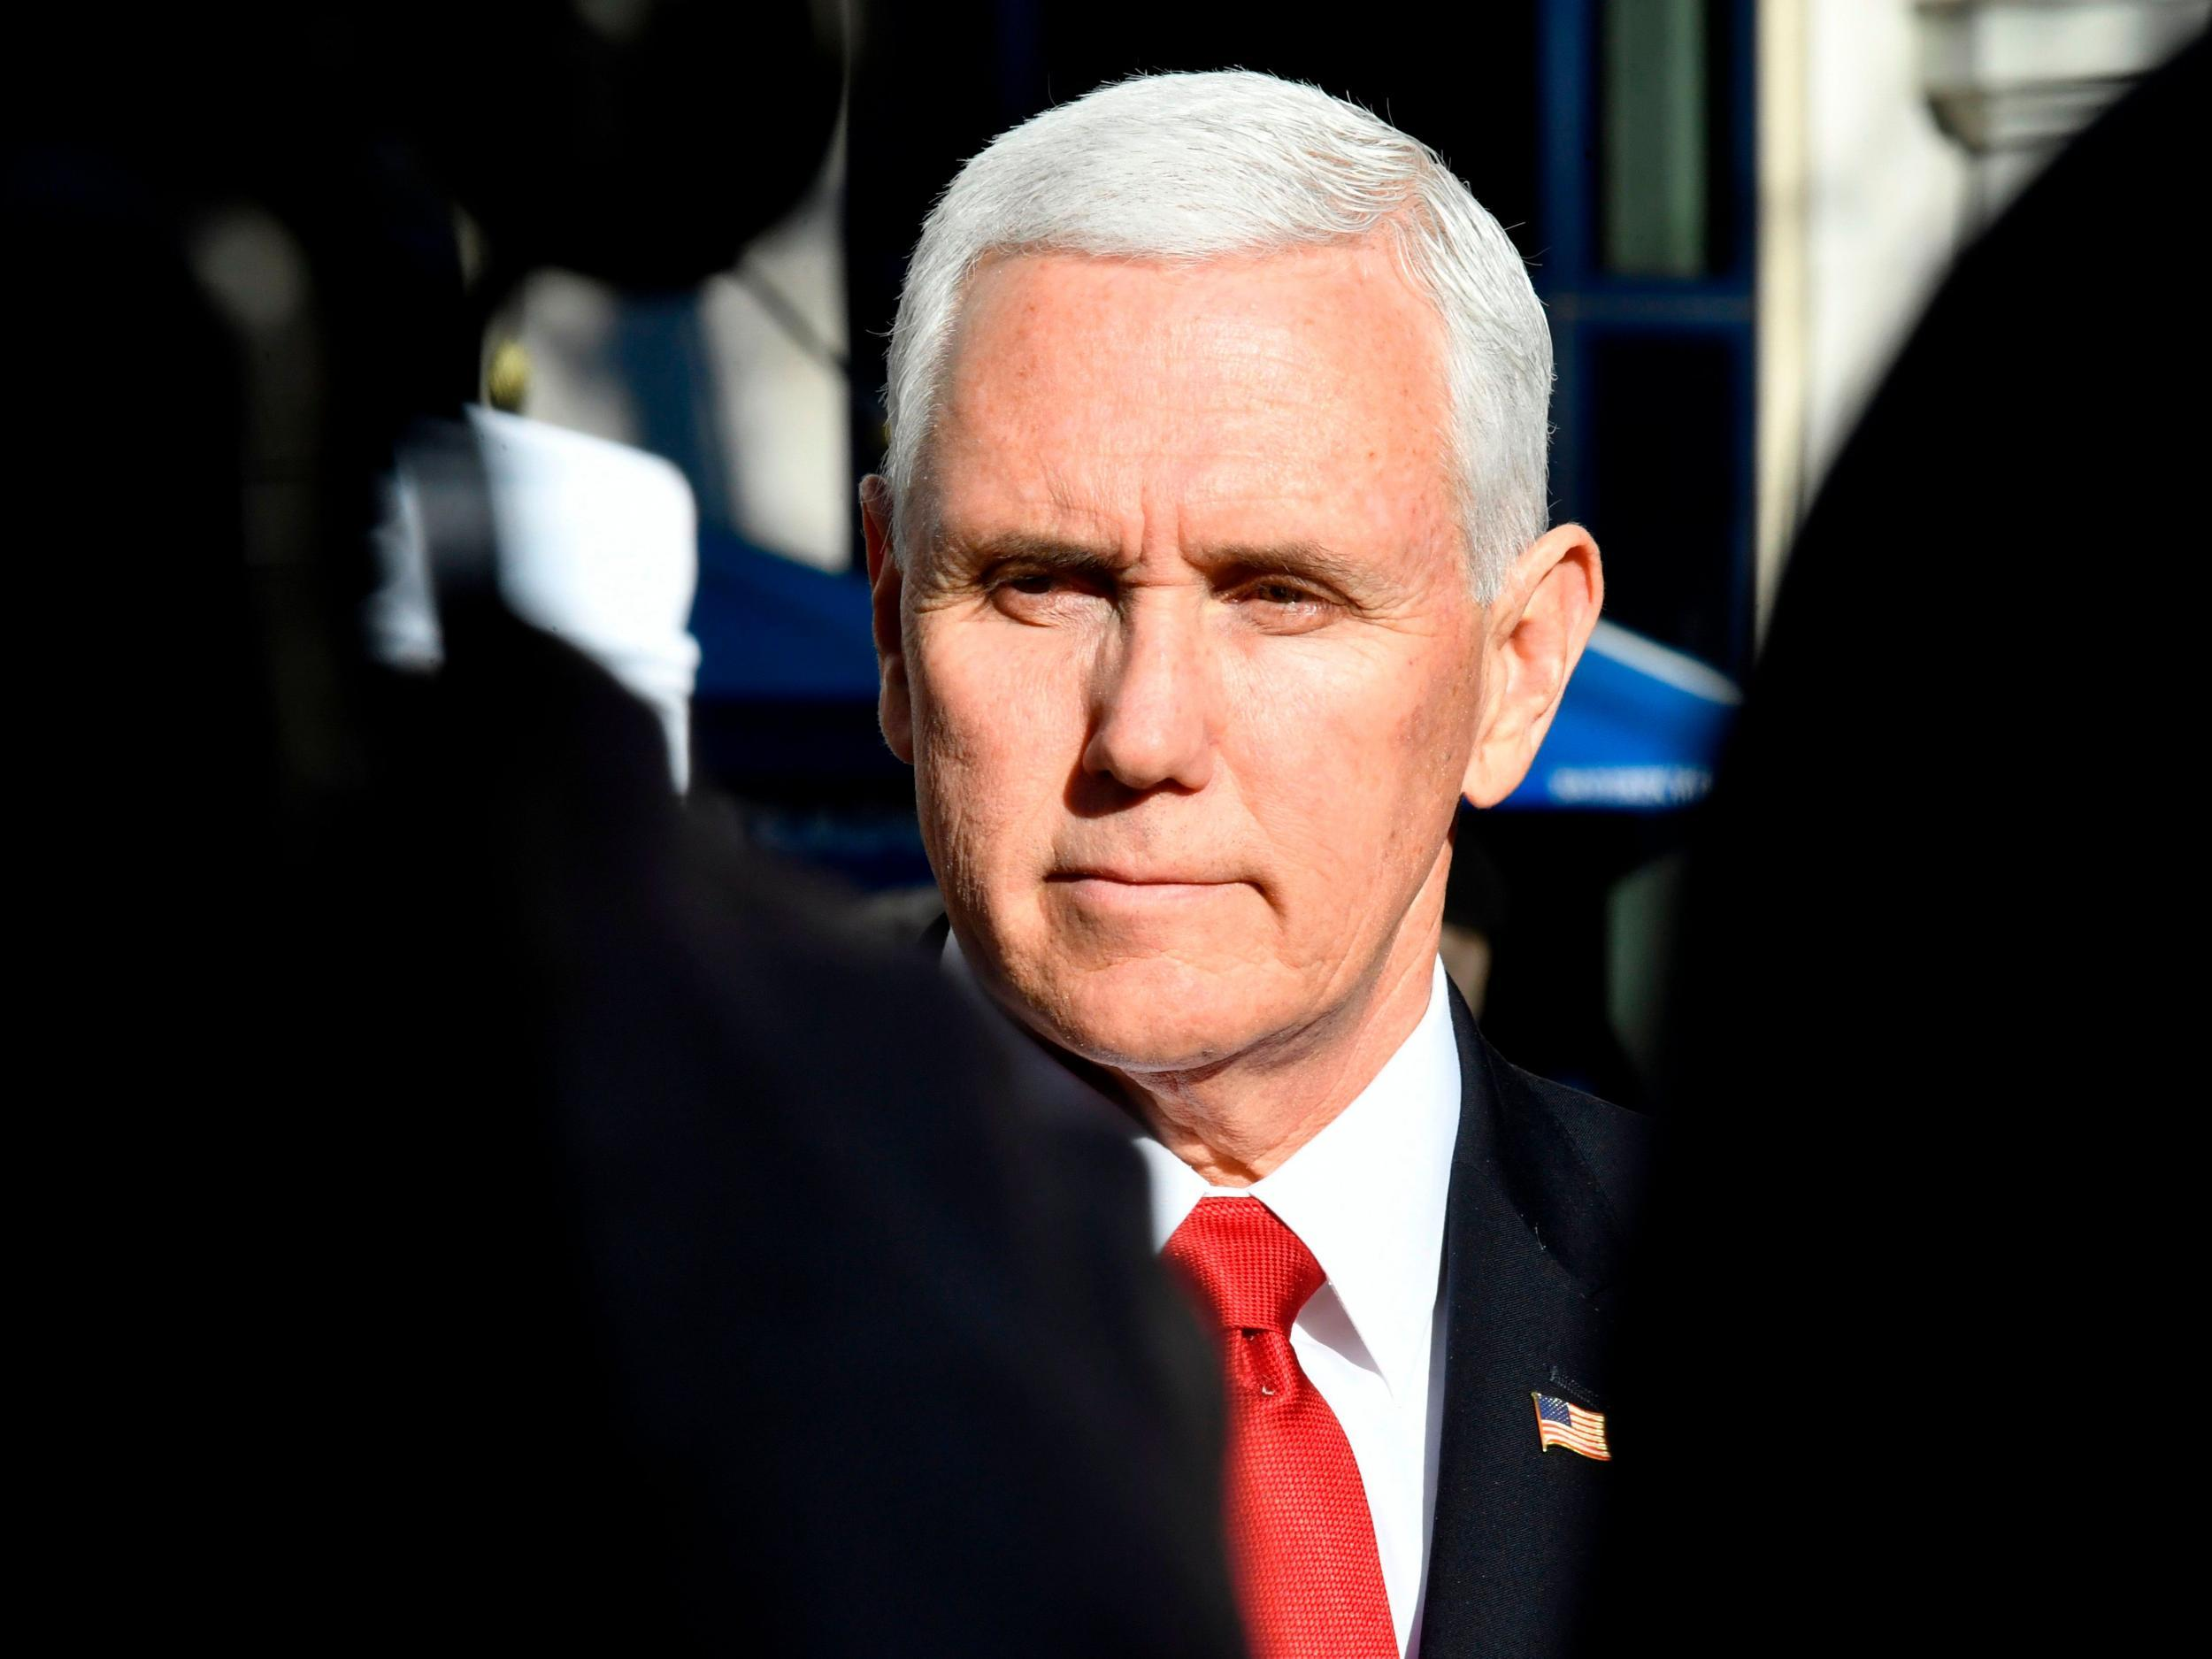 VP Pence abruptly cancels New Hampshire trip